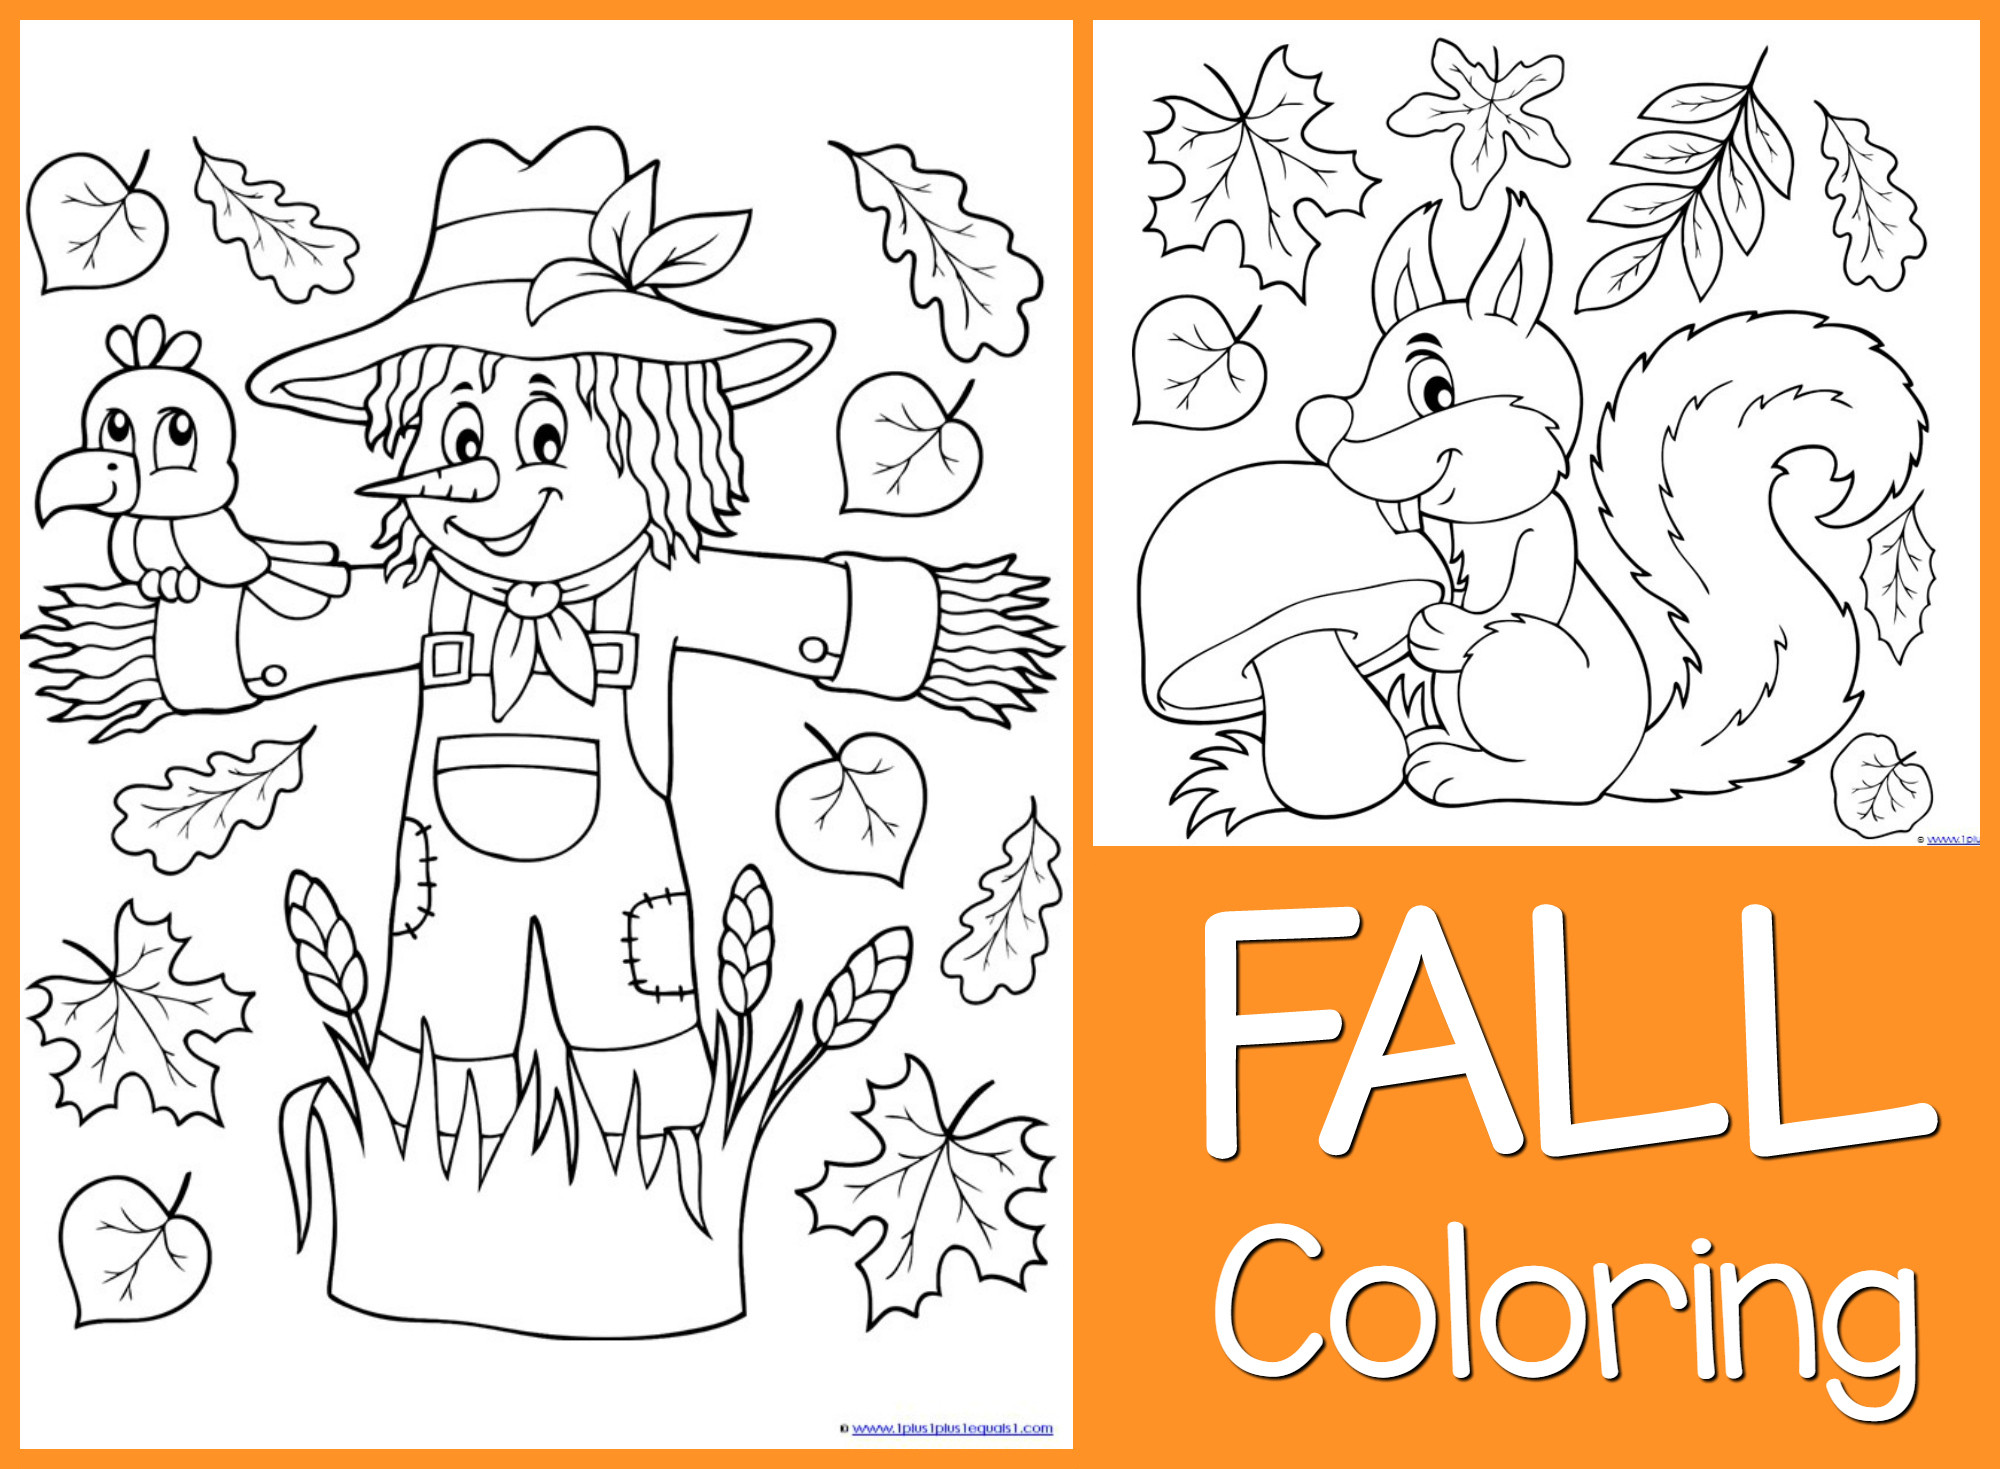 Best ideas about Free Printable Fall Coloring Pages For Kids . Save or Pin Just Color Free Coloring Printables Now.